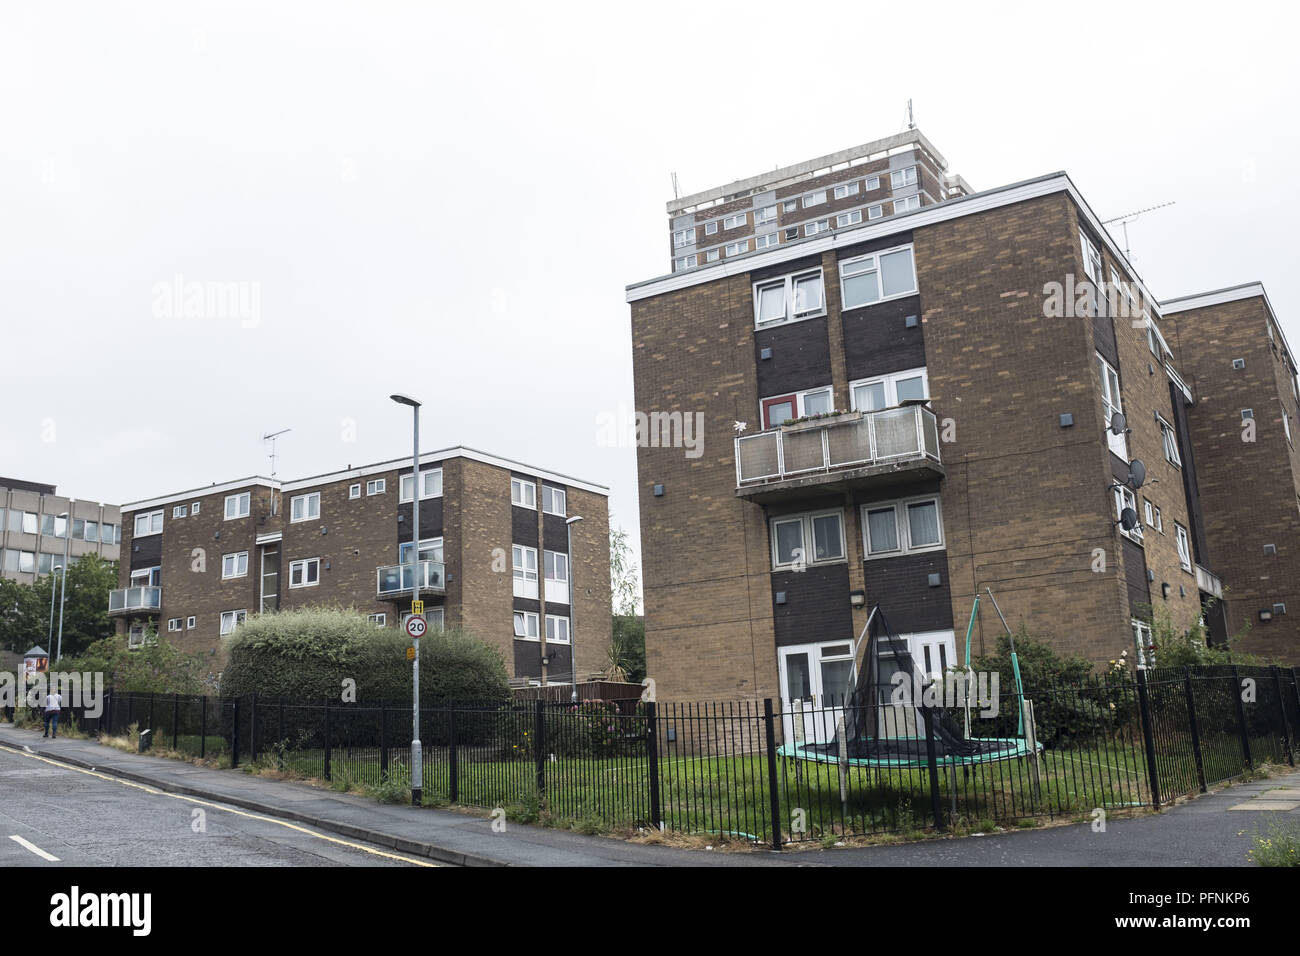 Leeds, UK. 20th Aug, 2018. Some Local council housings neighborhood seen in the woodhouse area in Leeds .Social housing is a method of housing tenure in which the home is possessed by a local authority, which may be central or local, Social housing is a rental housing which may be owned and ran by the state, by non-profit organizations, or by a combination of the two, usually with the purpose of delivering affordable housing. Social housing can also be perceived as a potential solution to housing inequality. Credit: Rahman Hassani/SOPA Images/ZUMA Wire/Alamy Live News - Stock Image